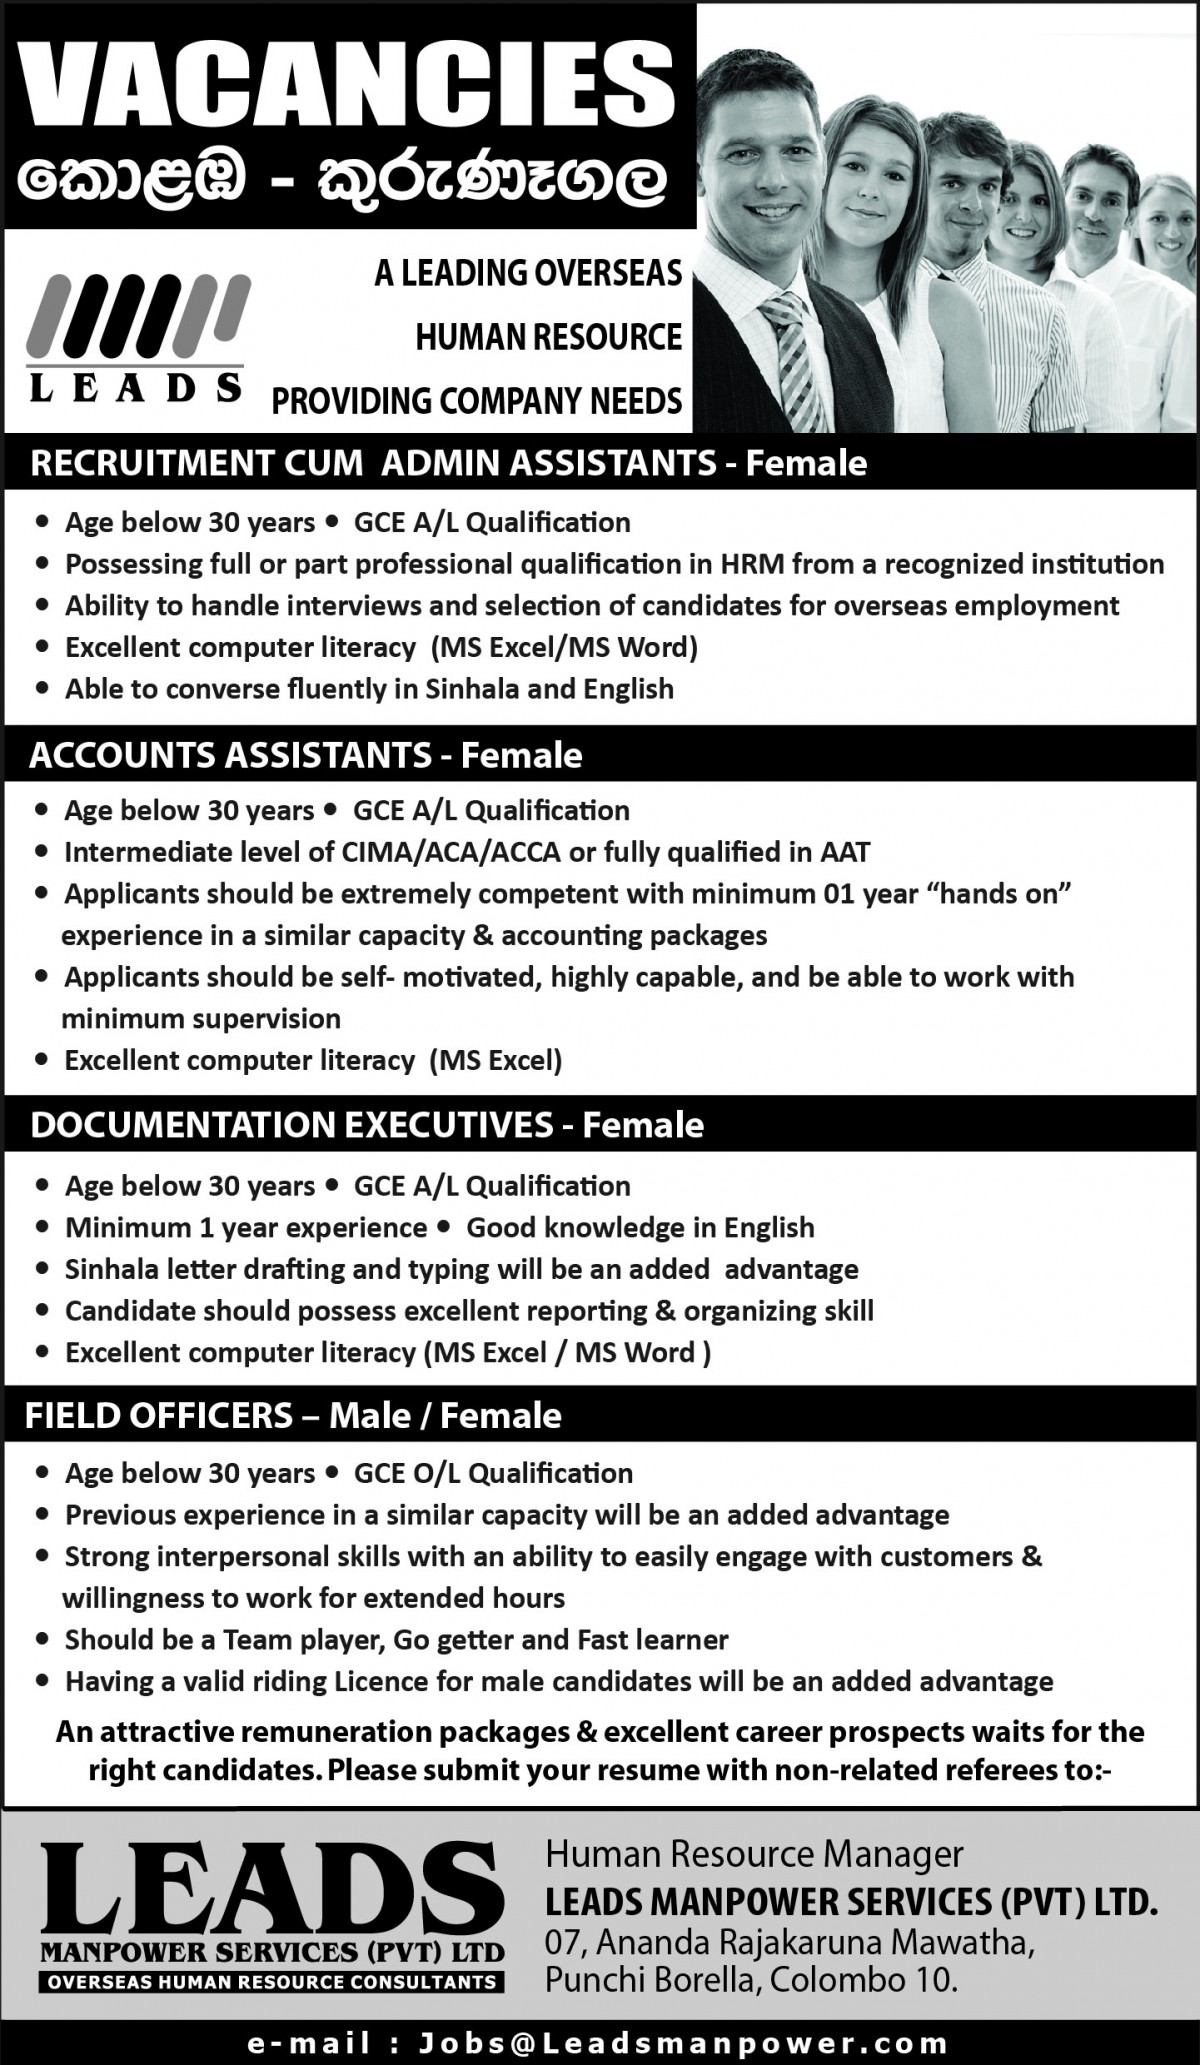 field officers job vacancy in sri lanka age below 30 years gce o l qualification previous experience in a similar capacity will be an added advantage strong interpersonal skills an